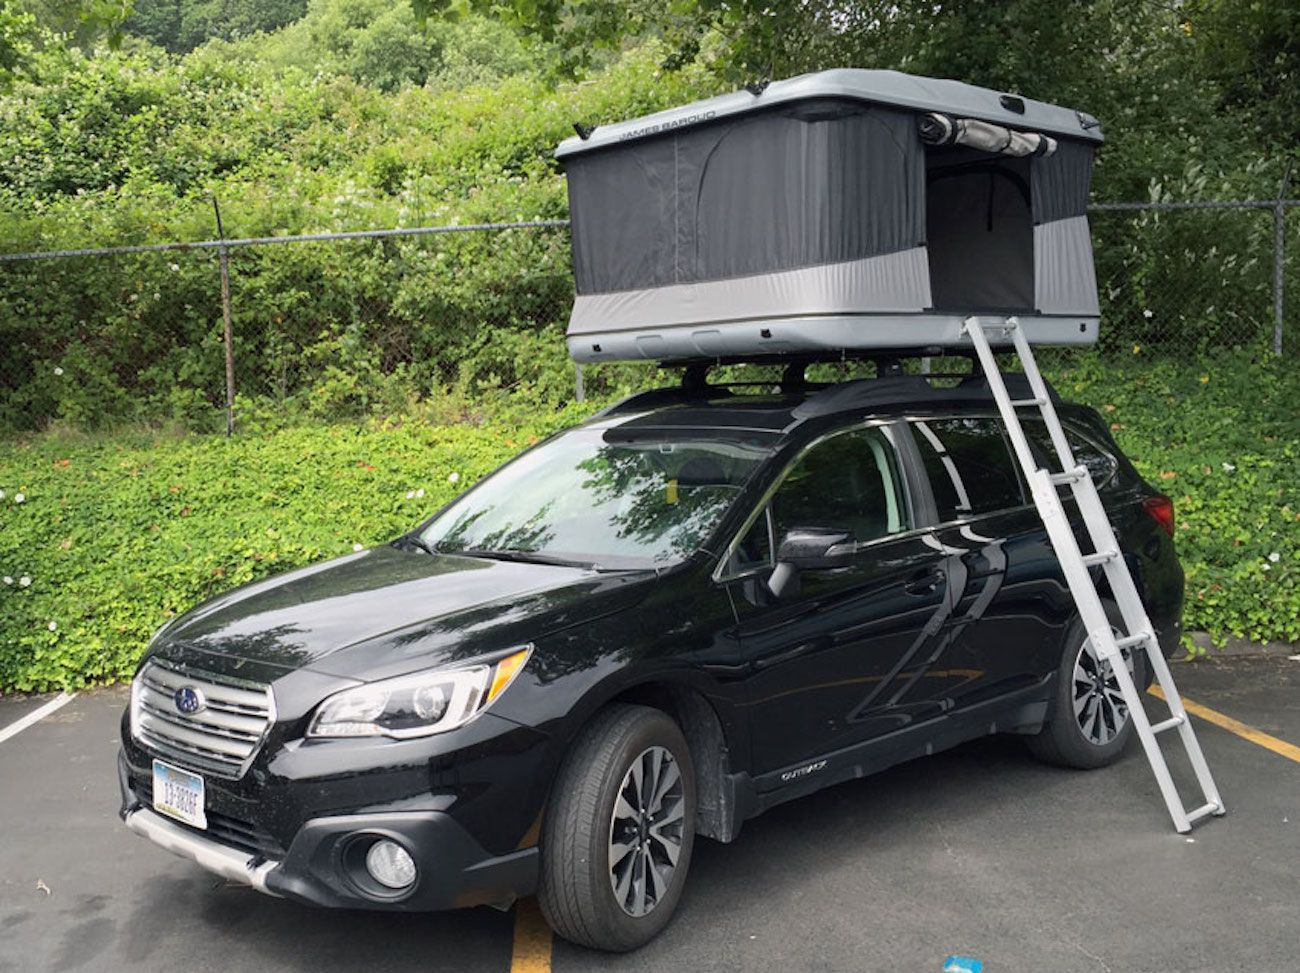 Vehicle roof tents